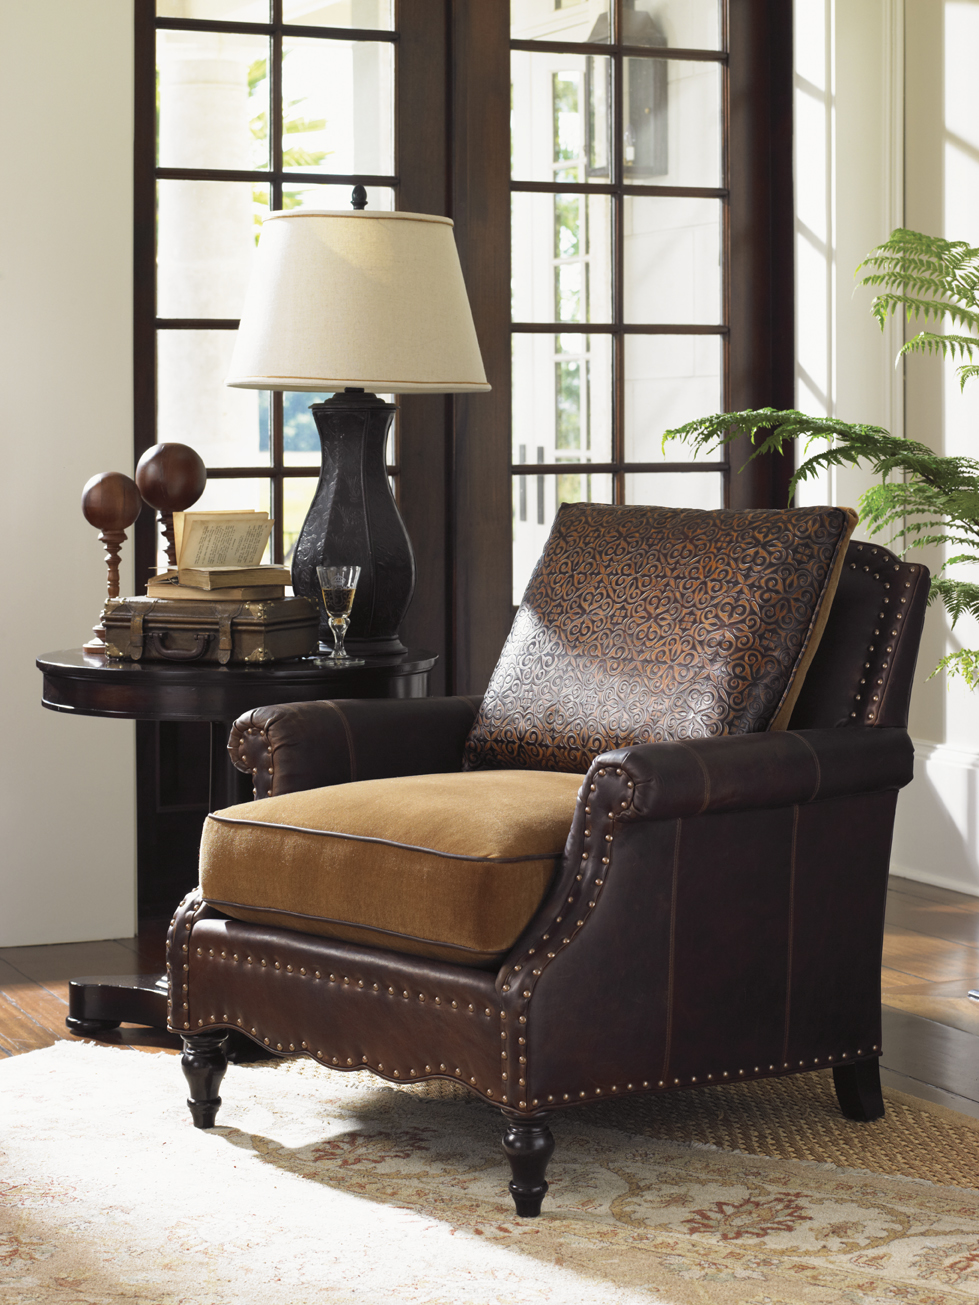 Living Room Furniture - Mixing Leather and Fabric ...